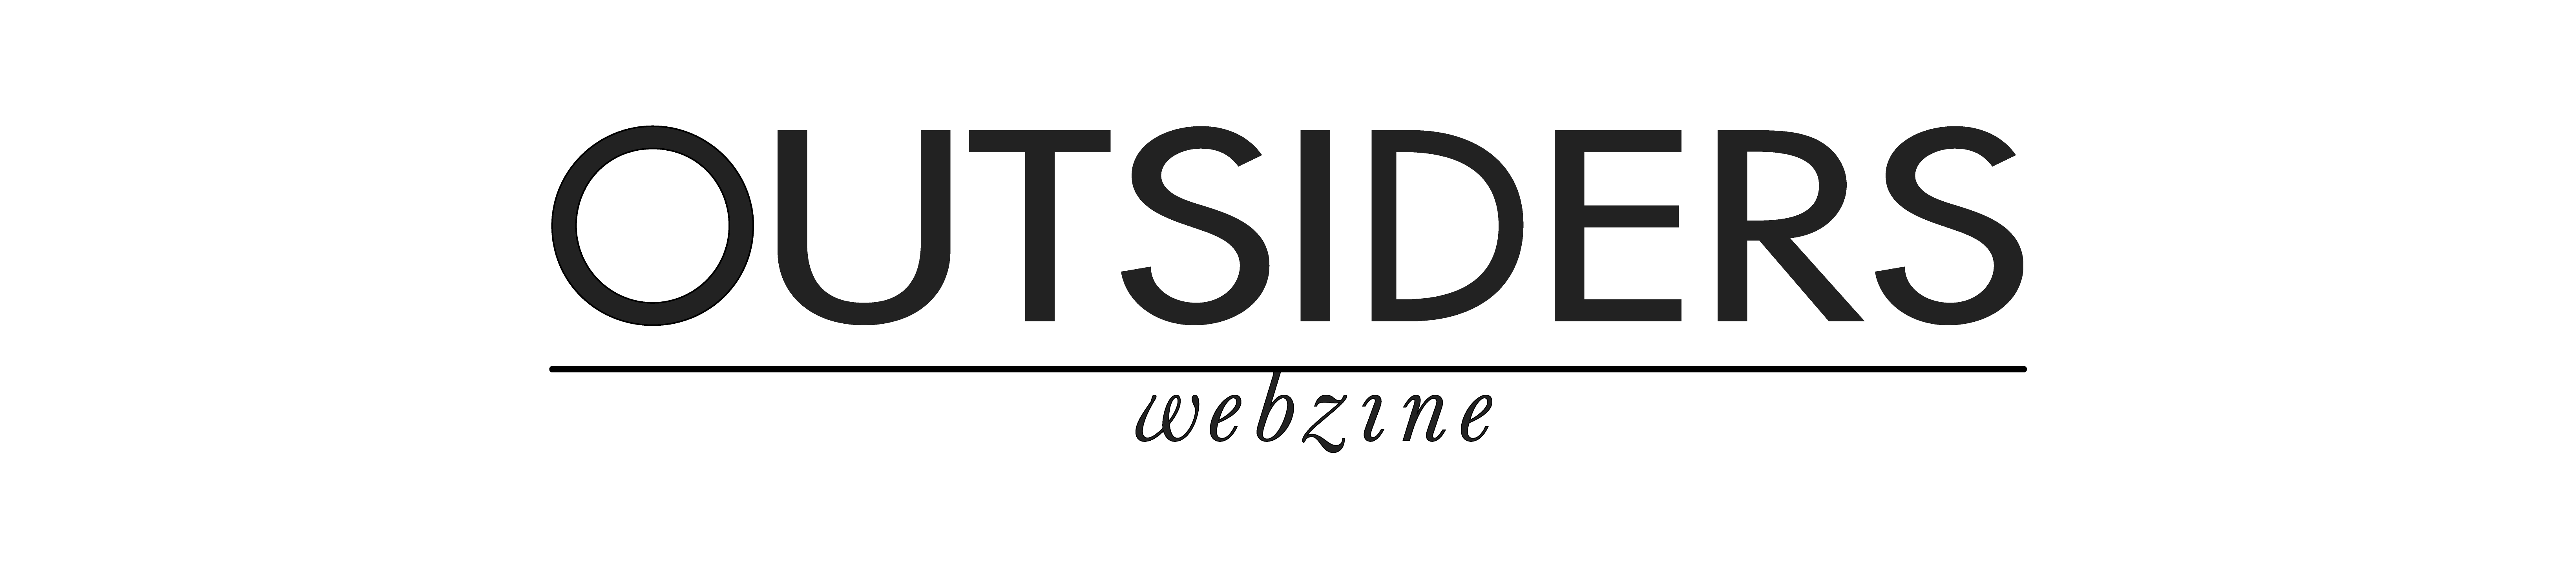 OUTsiders webzine